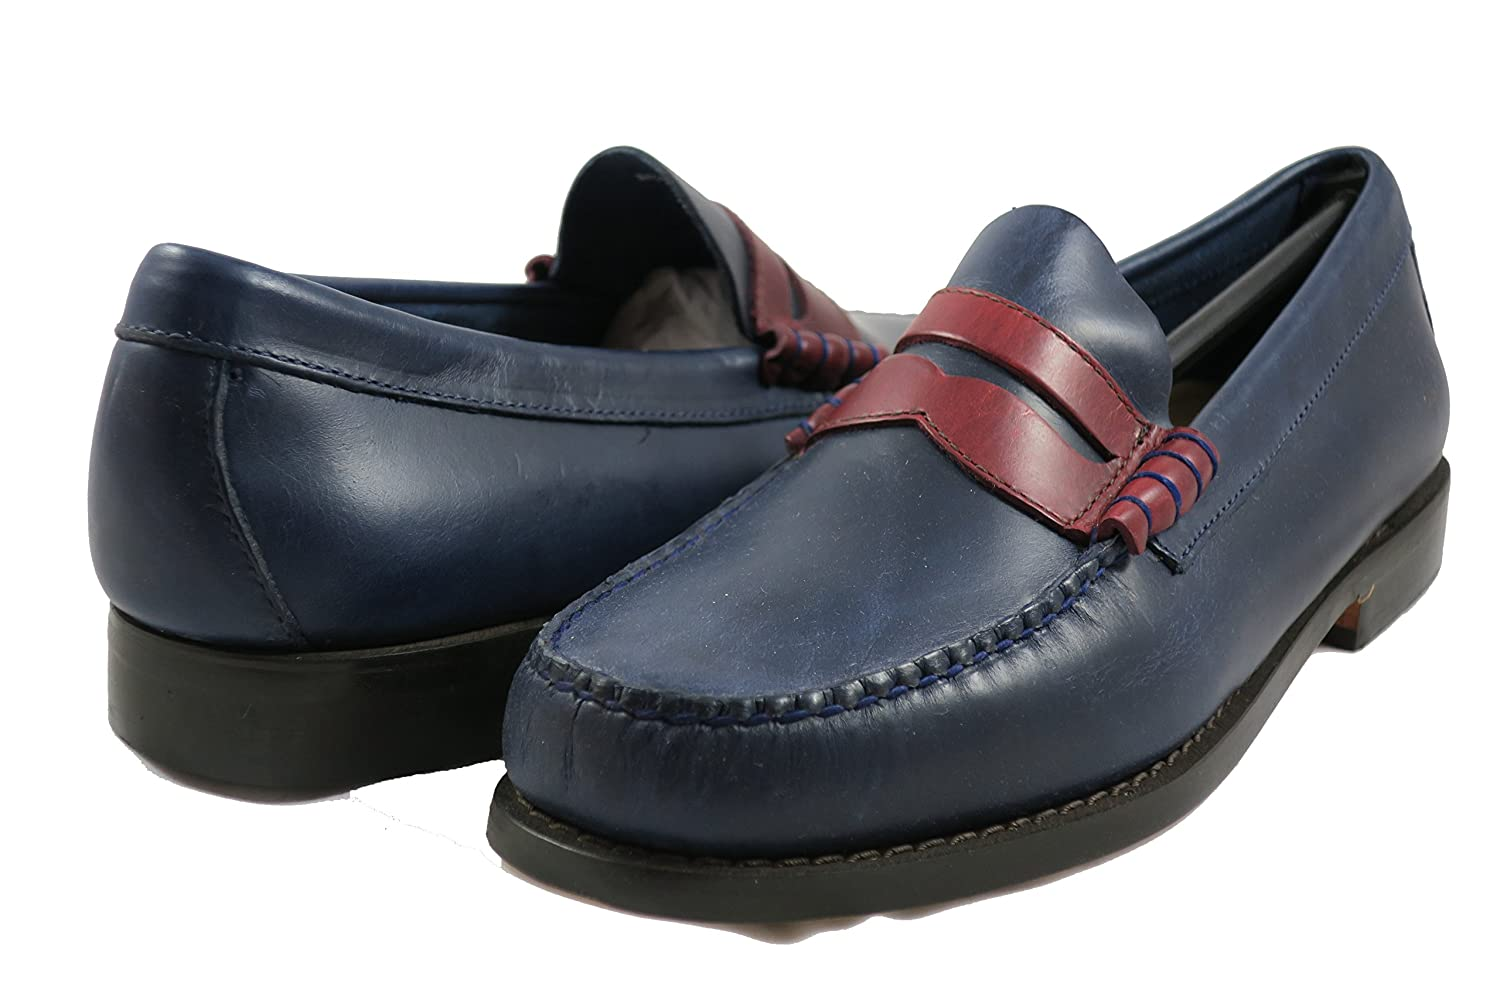 eeedb93fc1d51 50%OFF G.H. Bass & Co. Men's Leo Penny Loafer Navy 10.5 D - cohstra.org